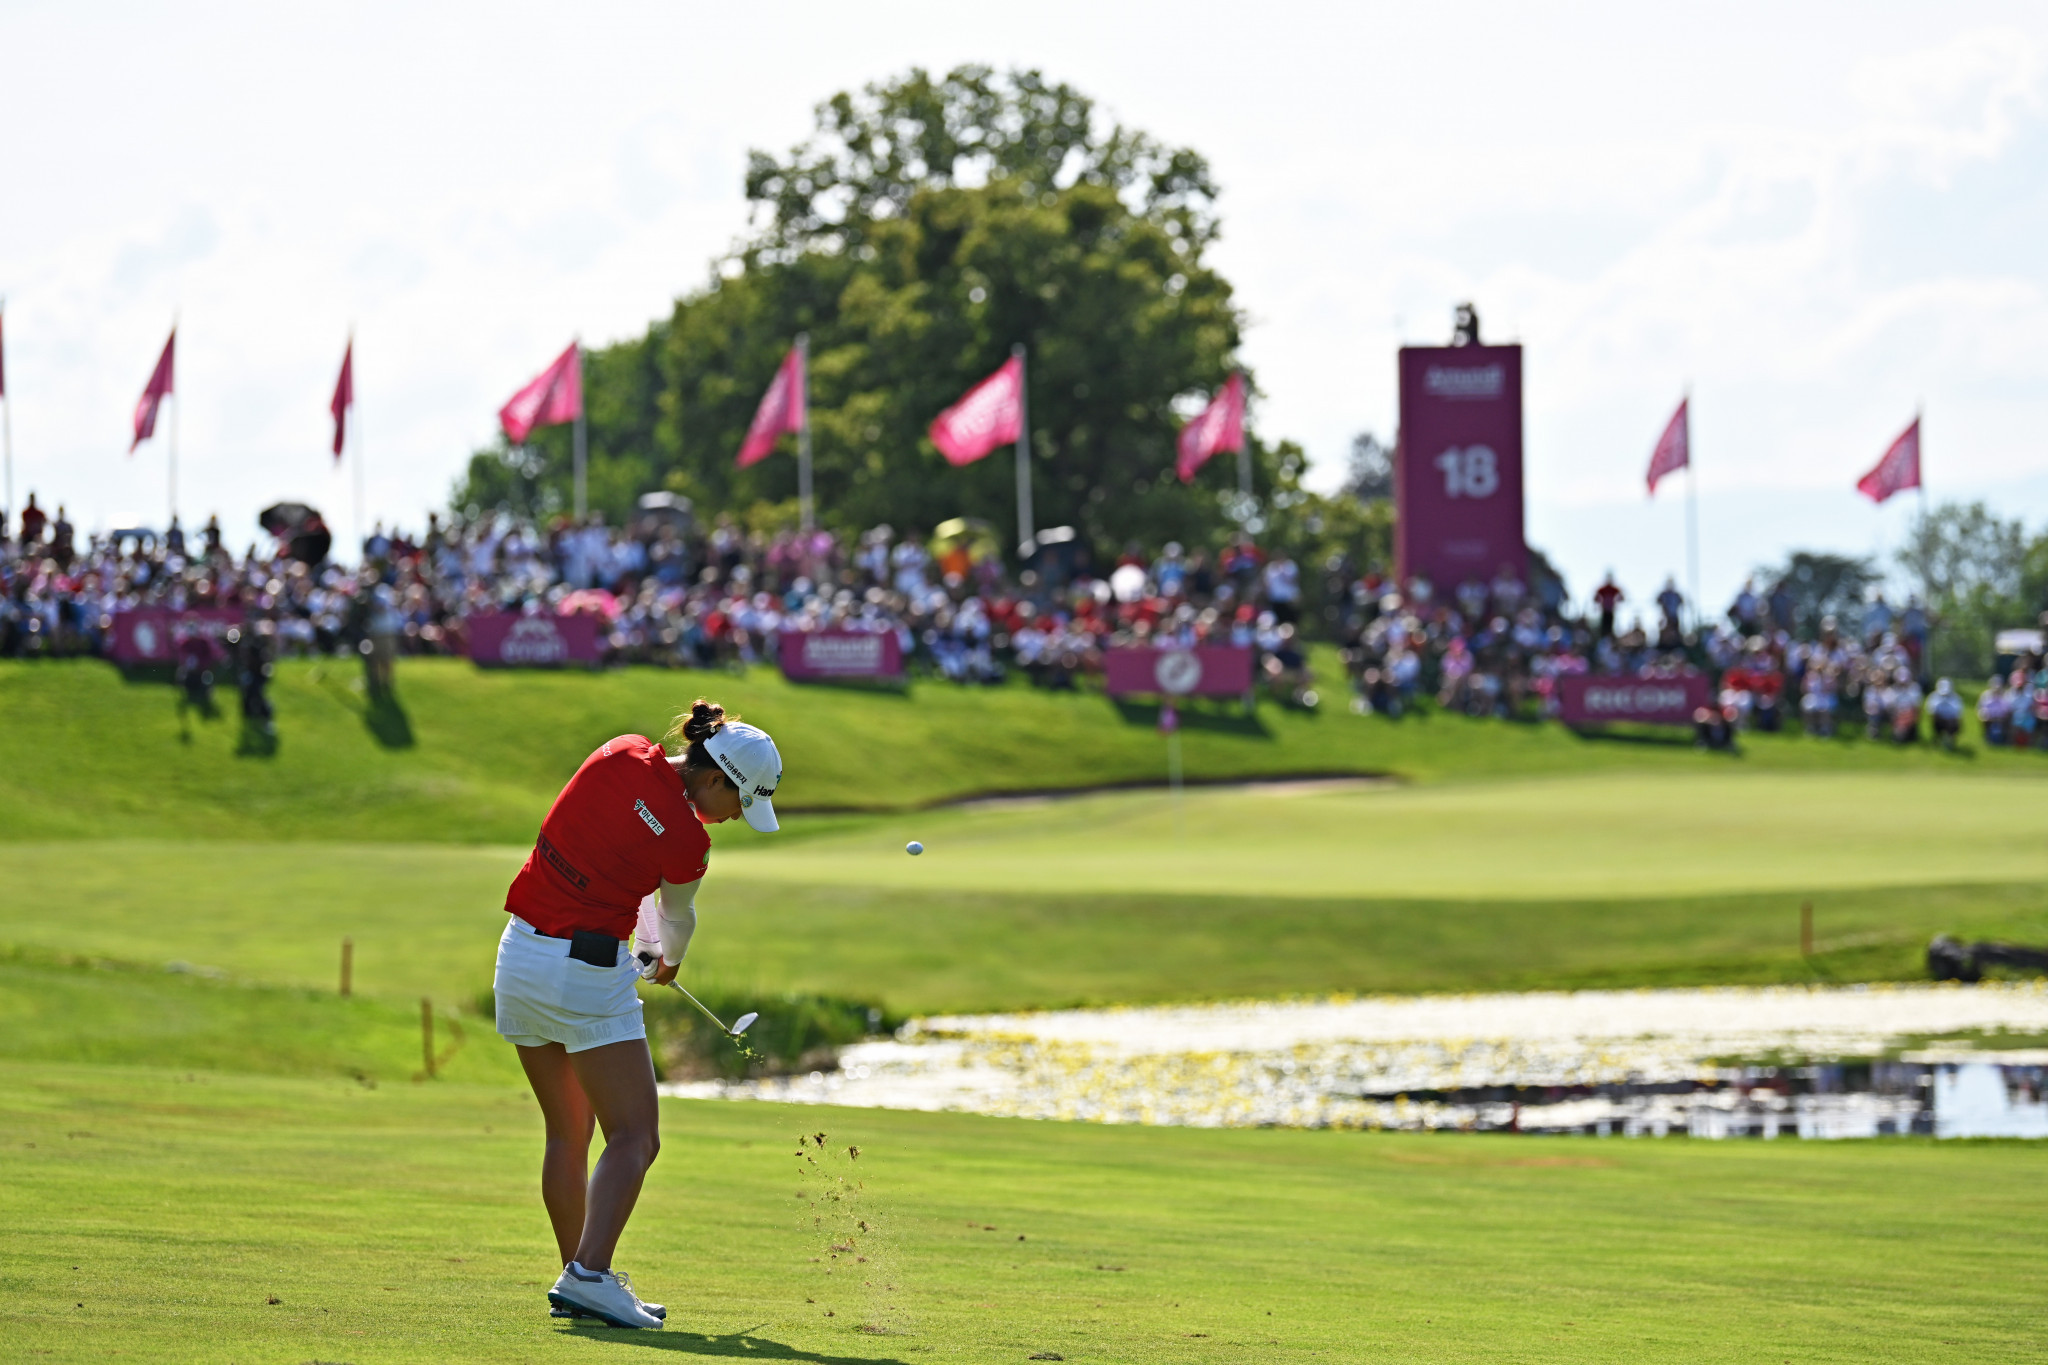 Minjee Lee set up the victory with a stunning second shot on the playoff hole ©Getty Images